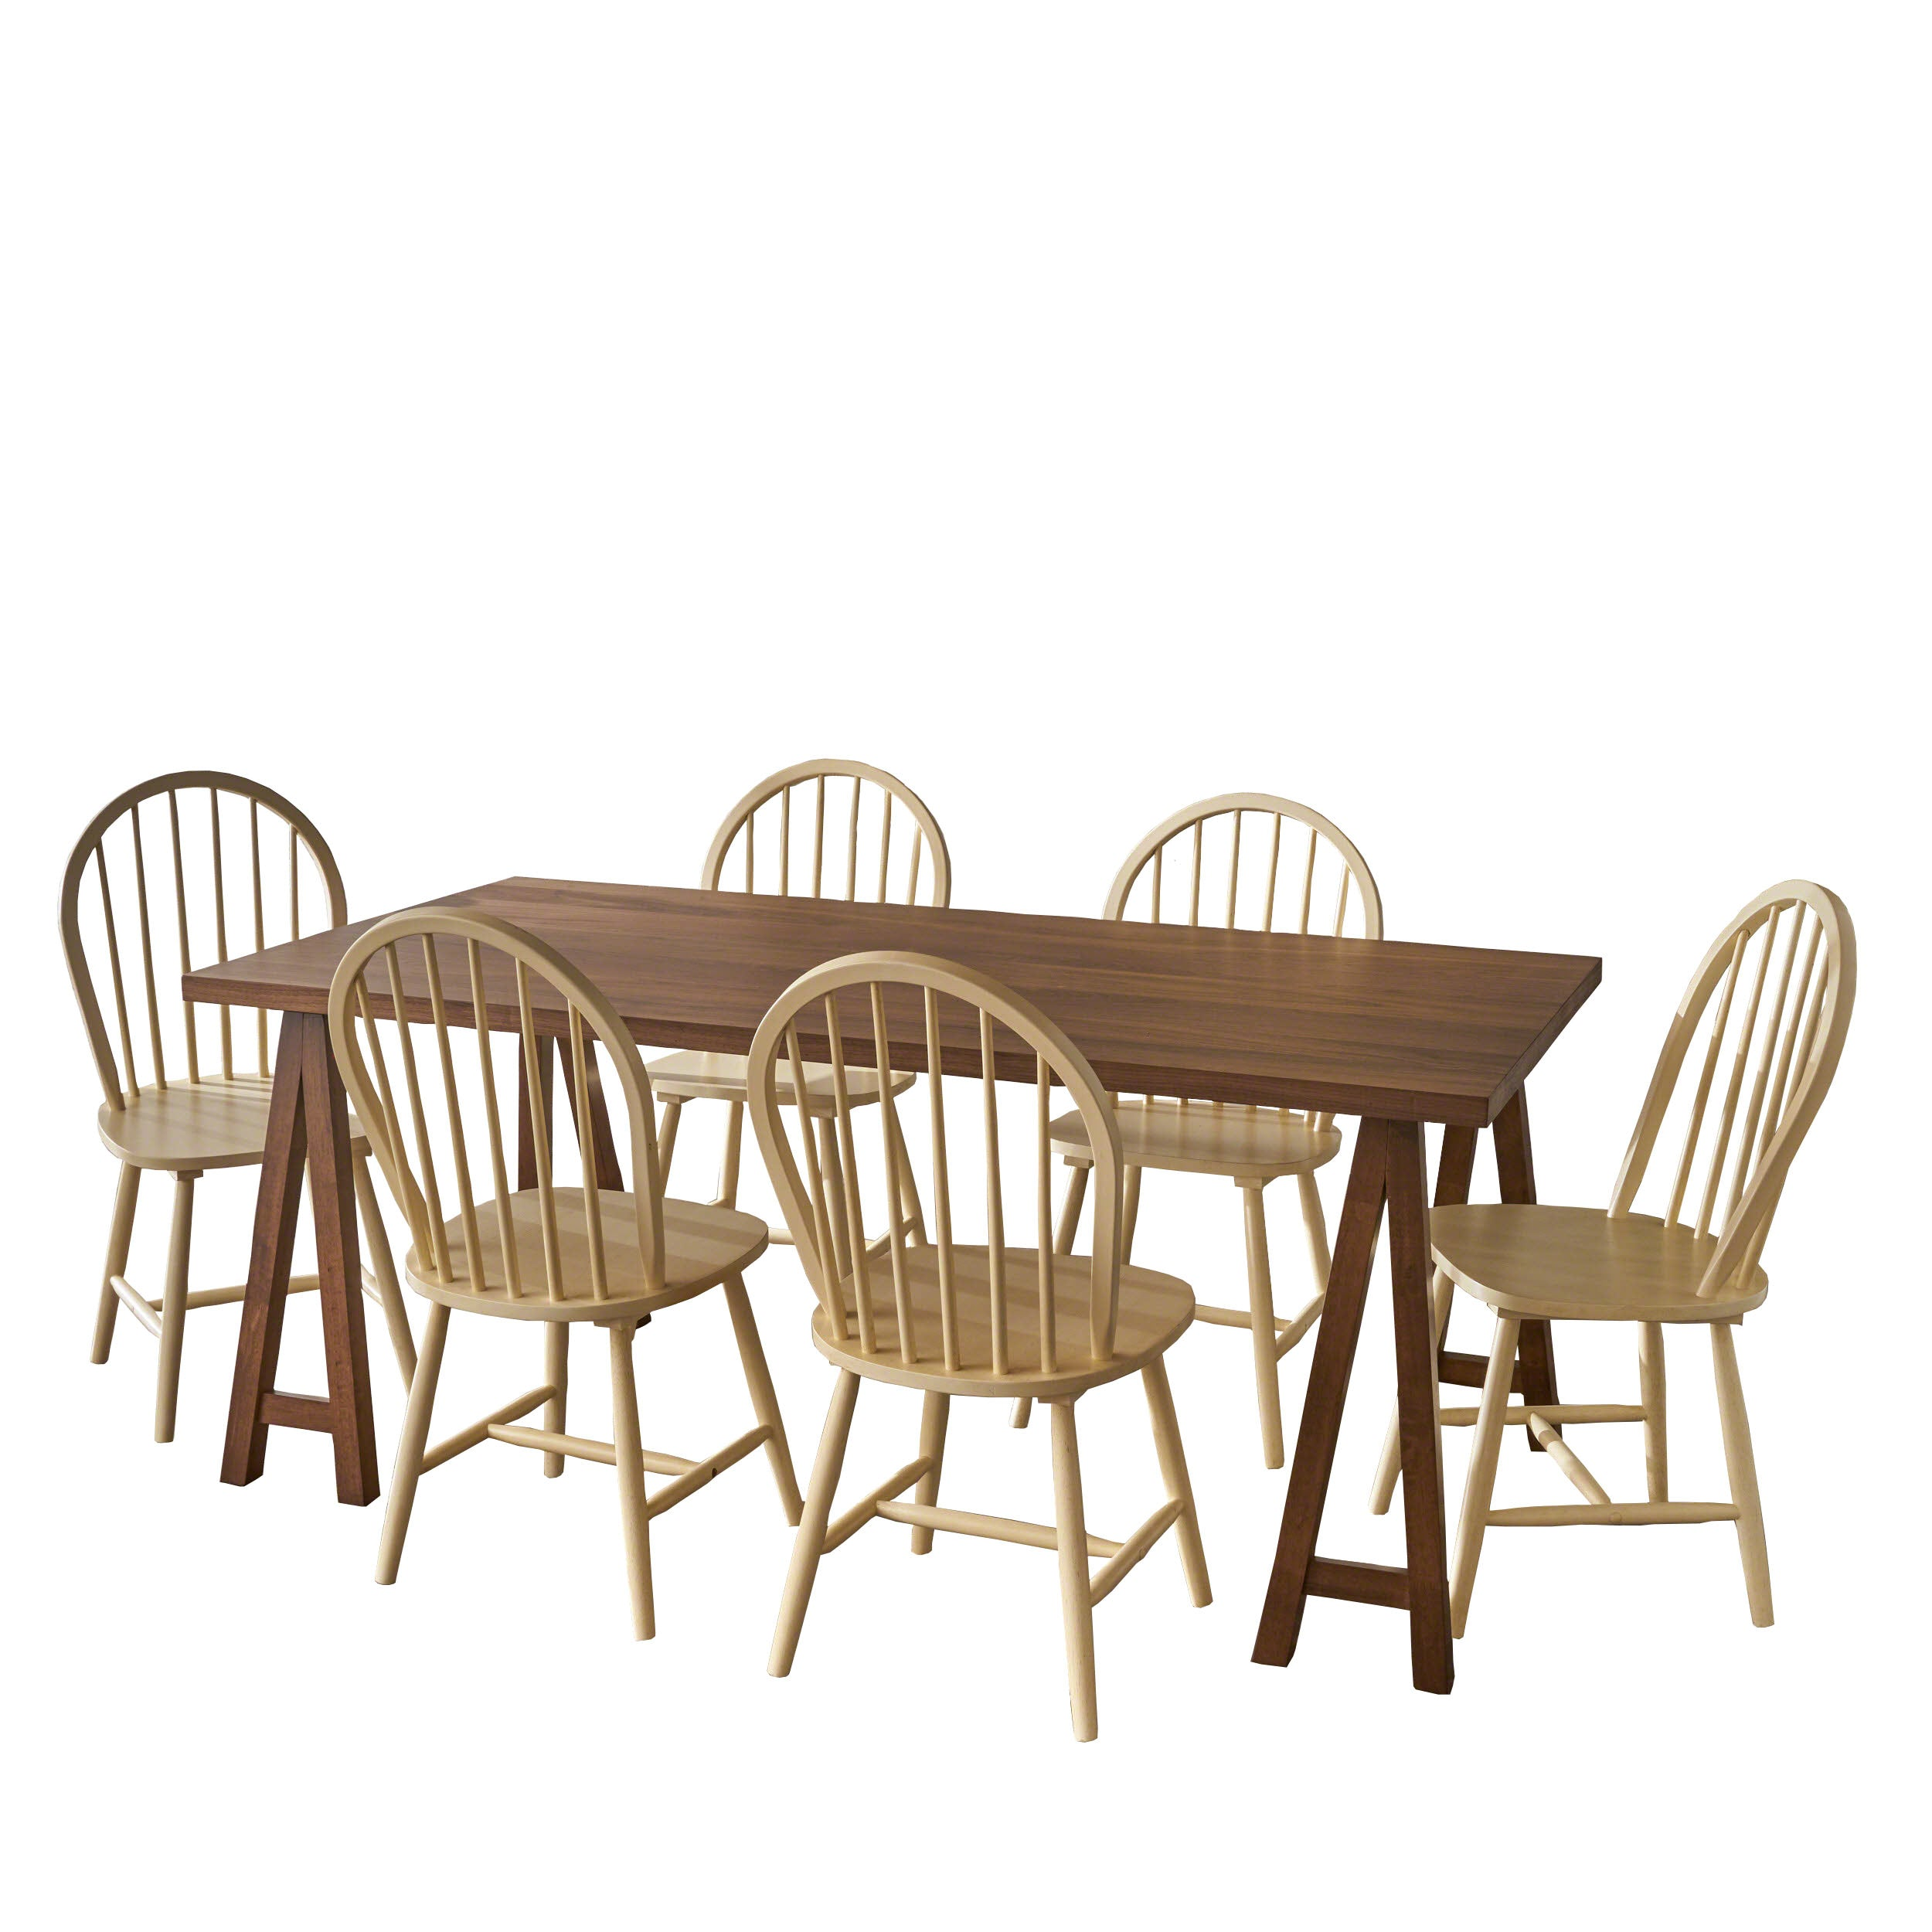 Angela Farmhouse Cottage 7 Piece Faux Wood Dining Set with Rubberwood Chairs Antique White